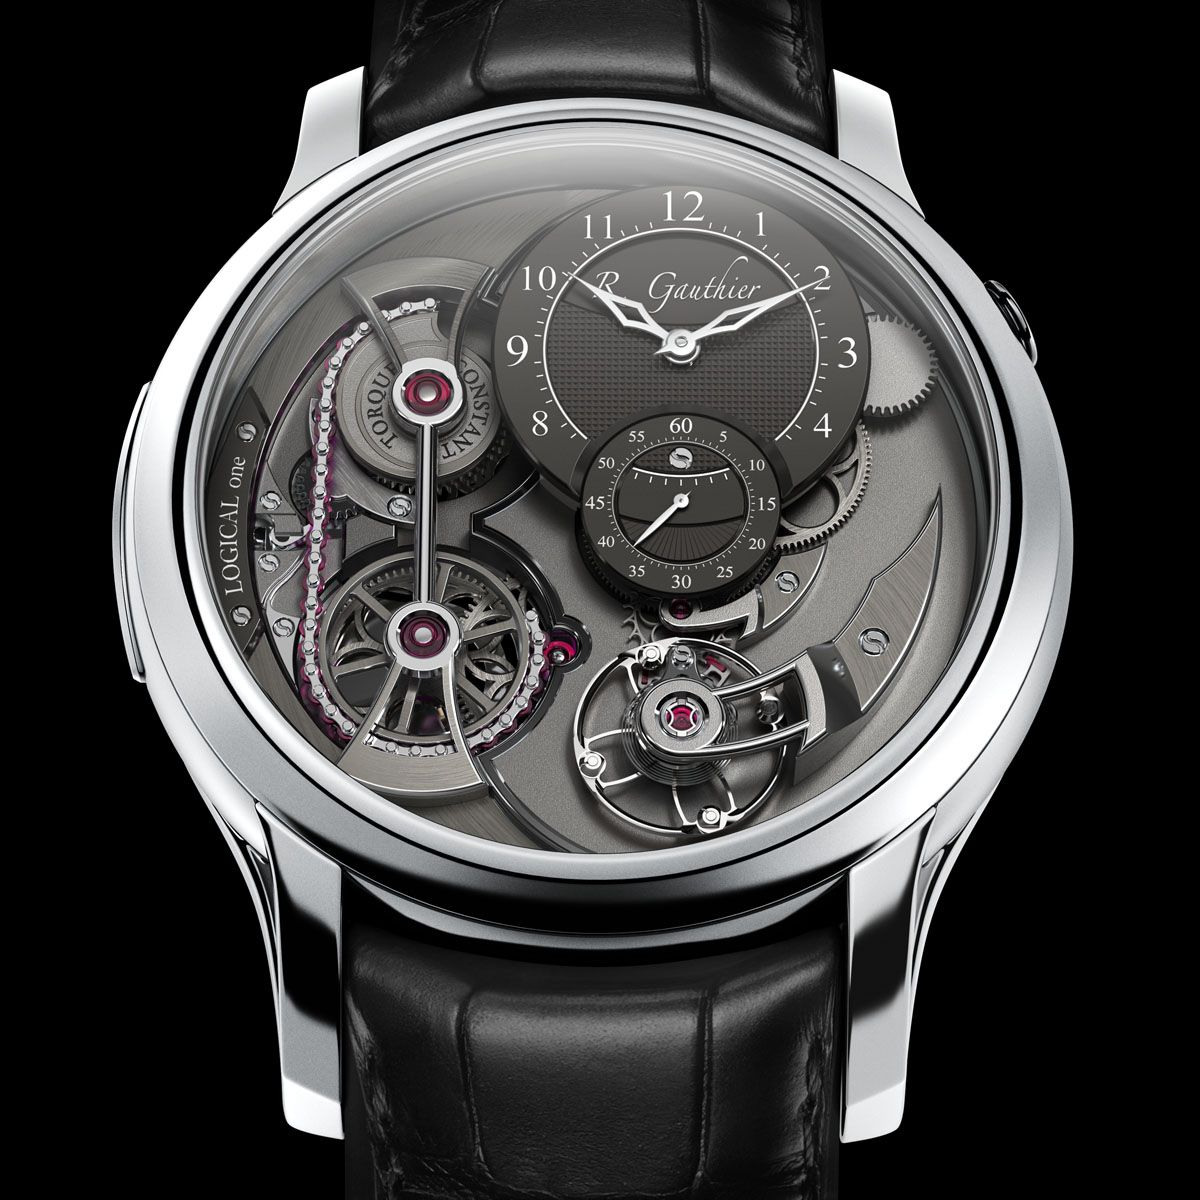 La Romain Gauthier Logical One @DestinationMars